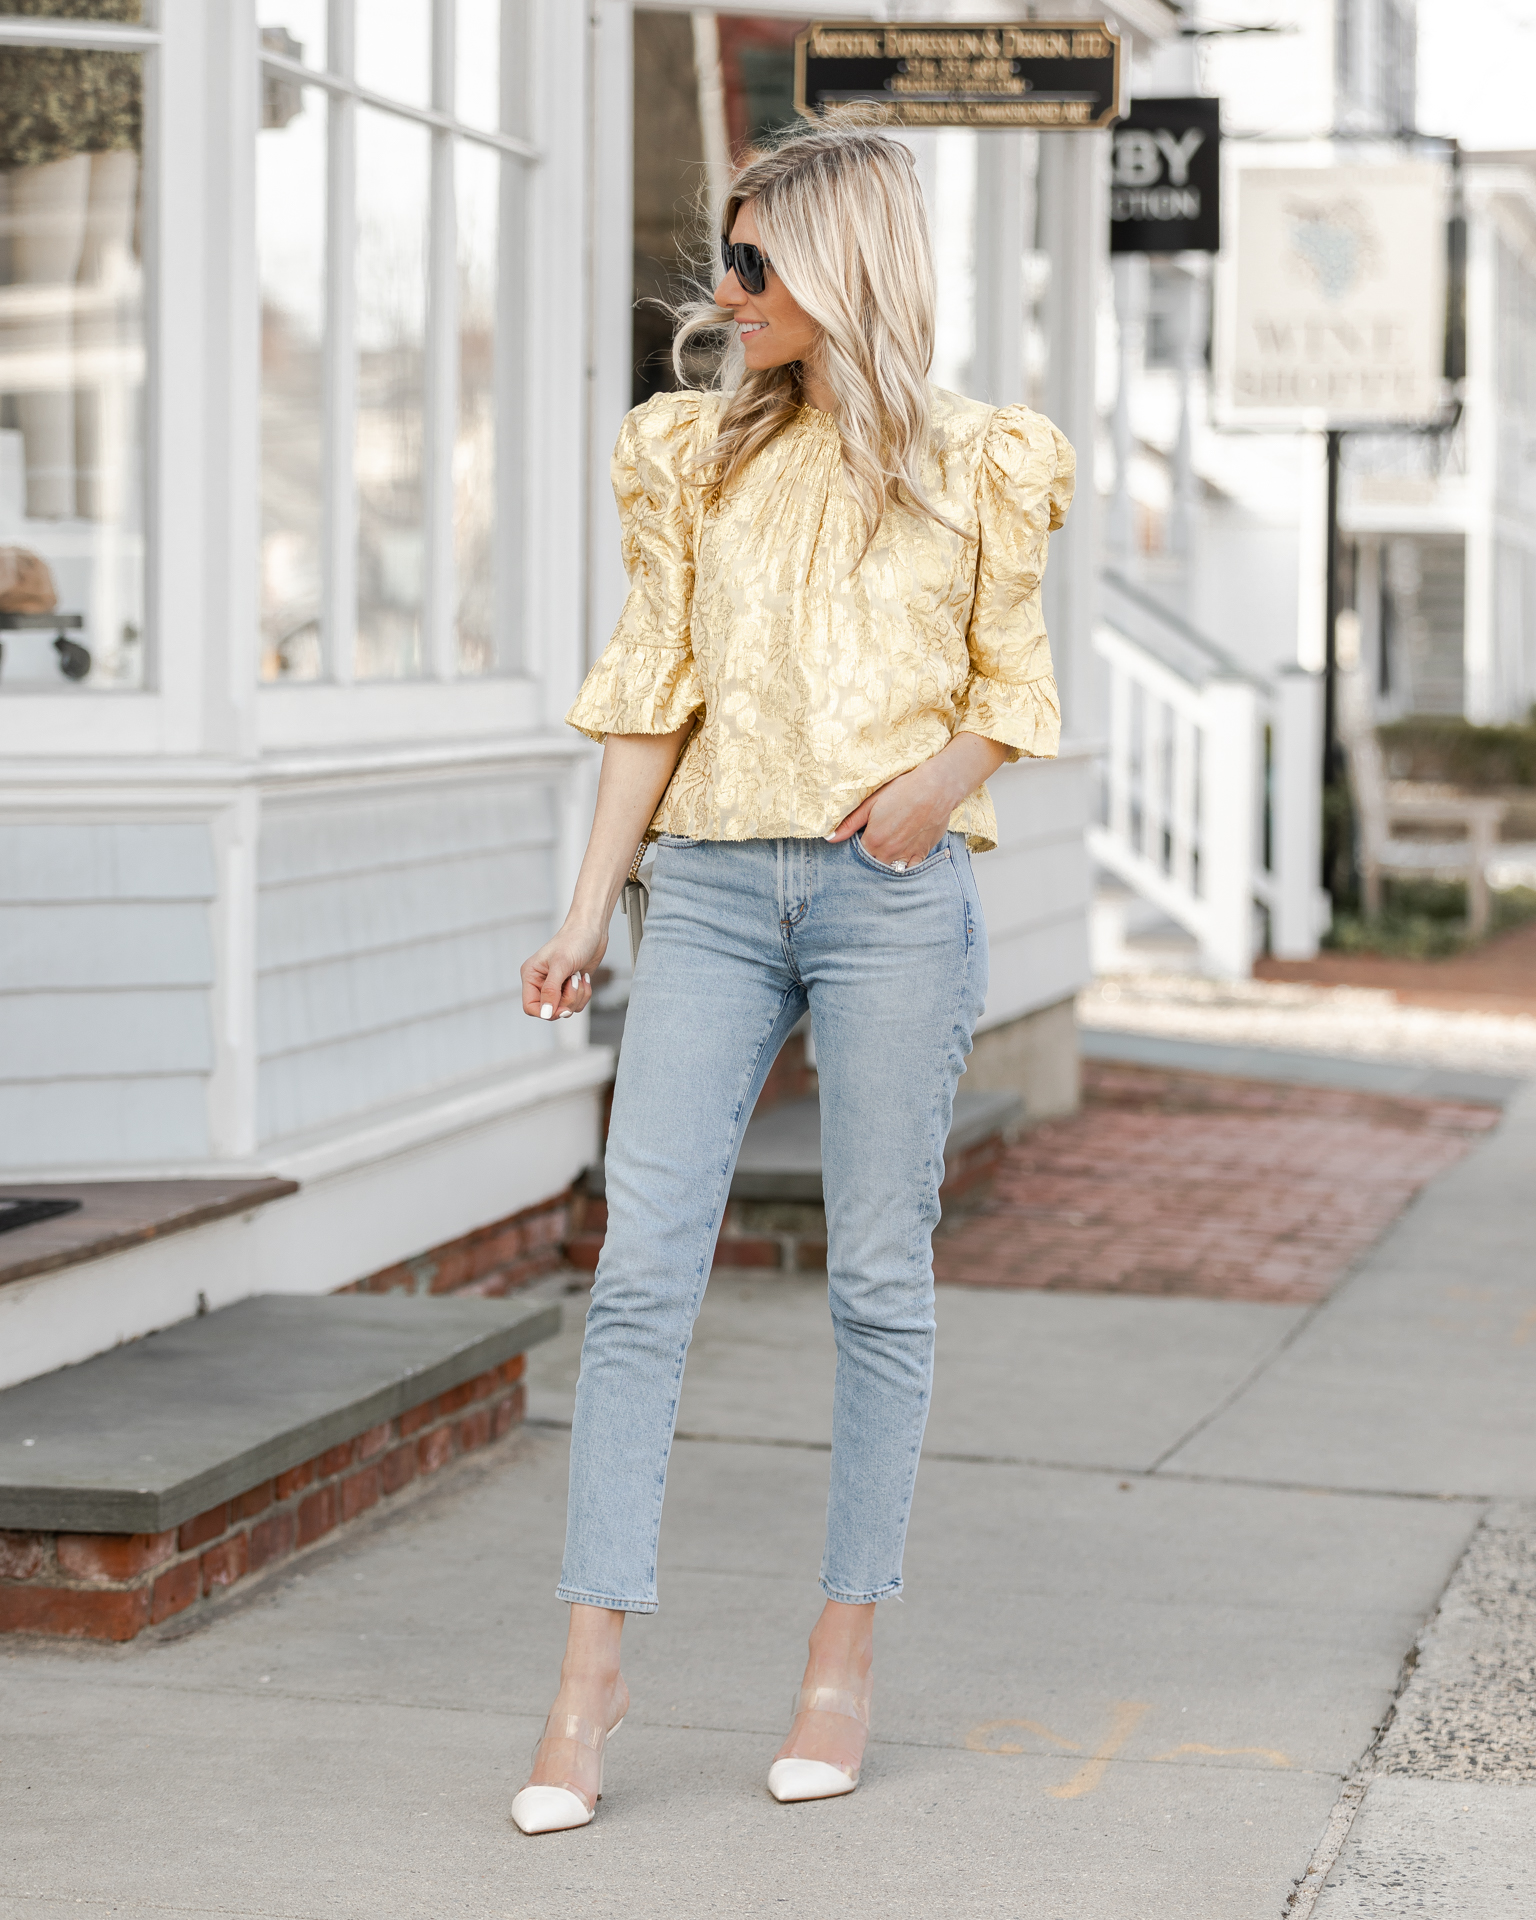 boxy-spring-top-from-saylor-the-glamorous-gal